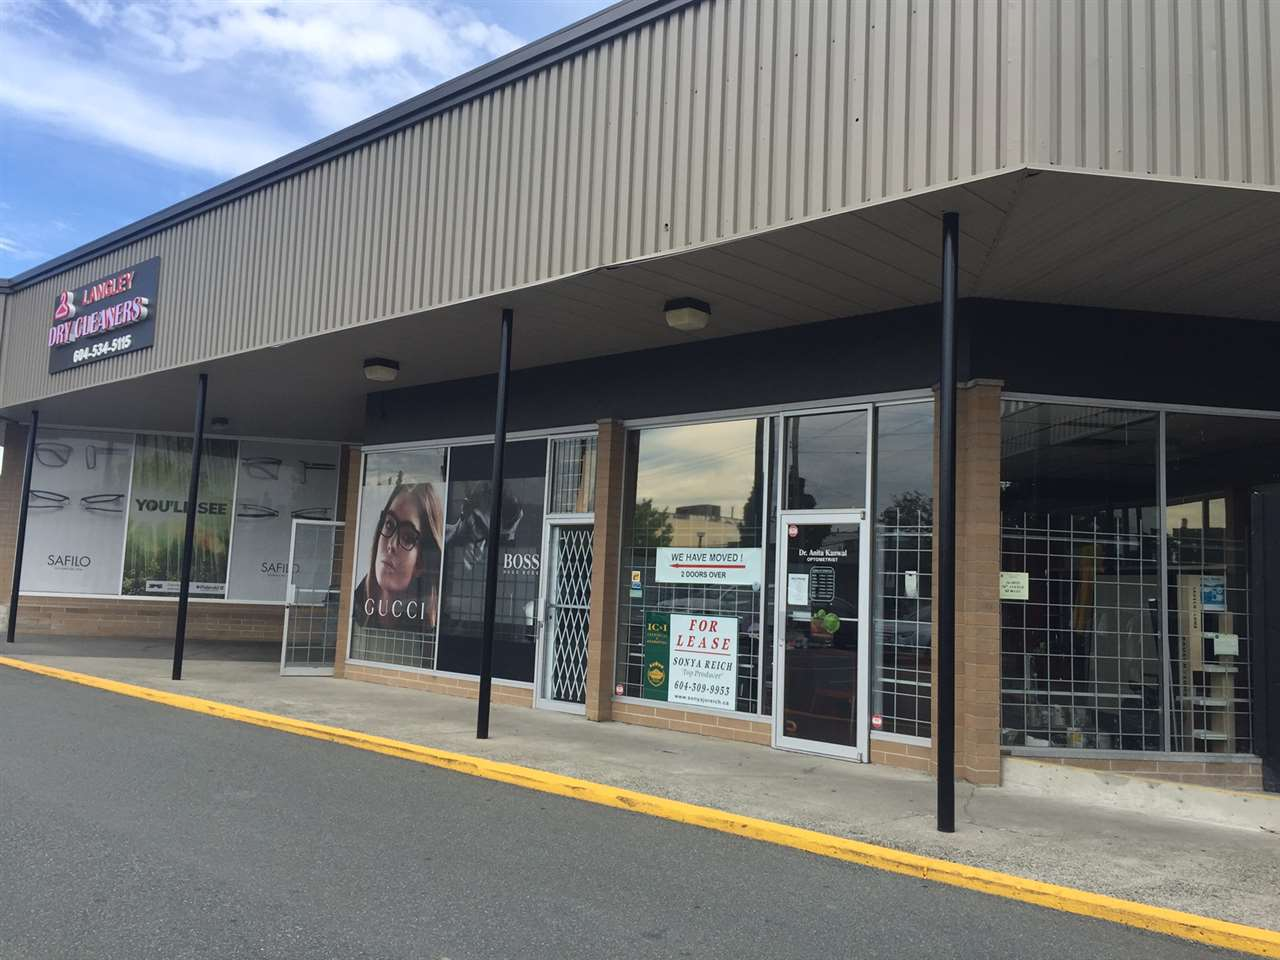 Retail Space OR LEASE at Highland Shopping Centre in Langley City. 1,079 SF, zoned C-1, store front with ample parking in front. Base rent at $16/sf/annum, additional rent at $5.28/sf/annum.